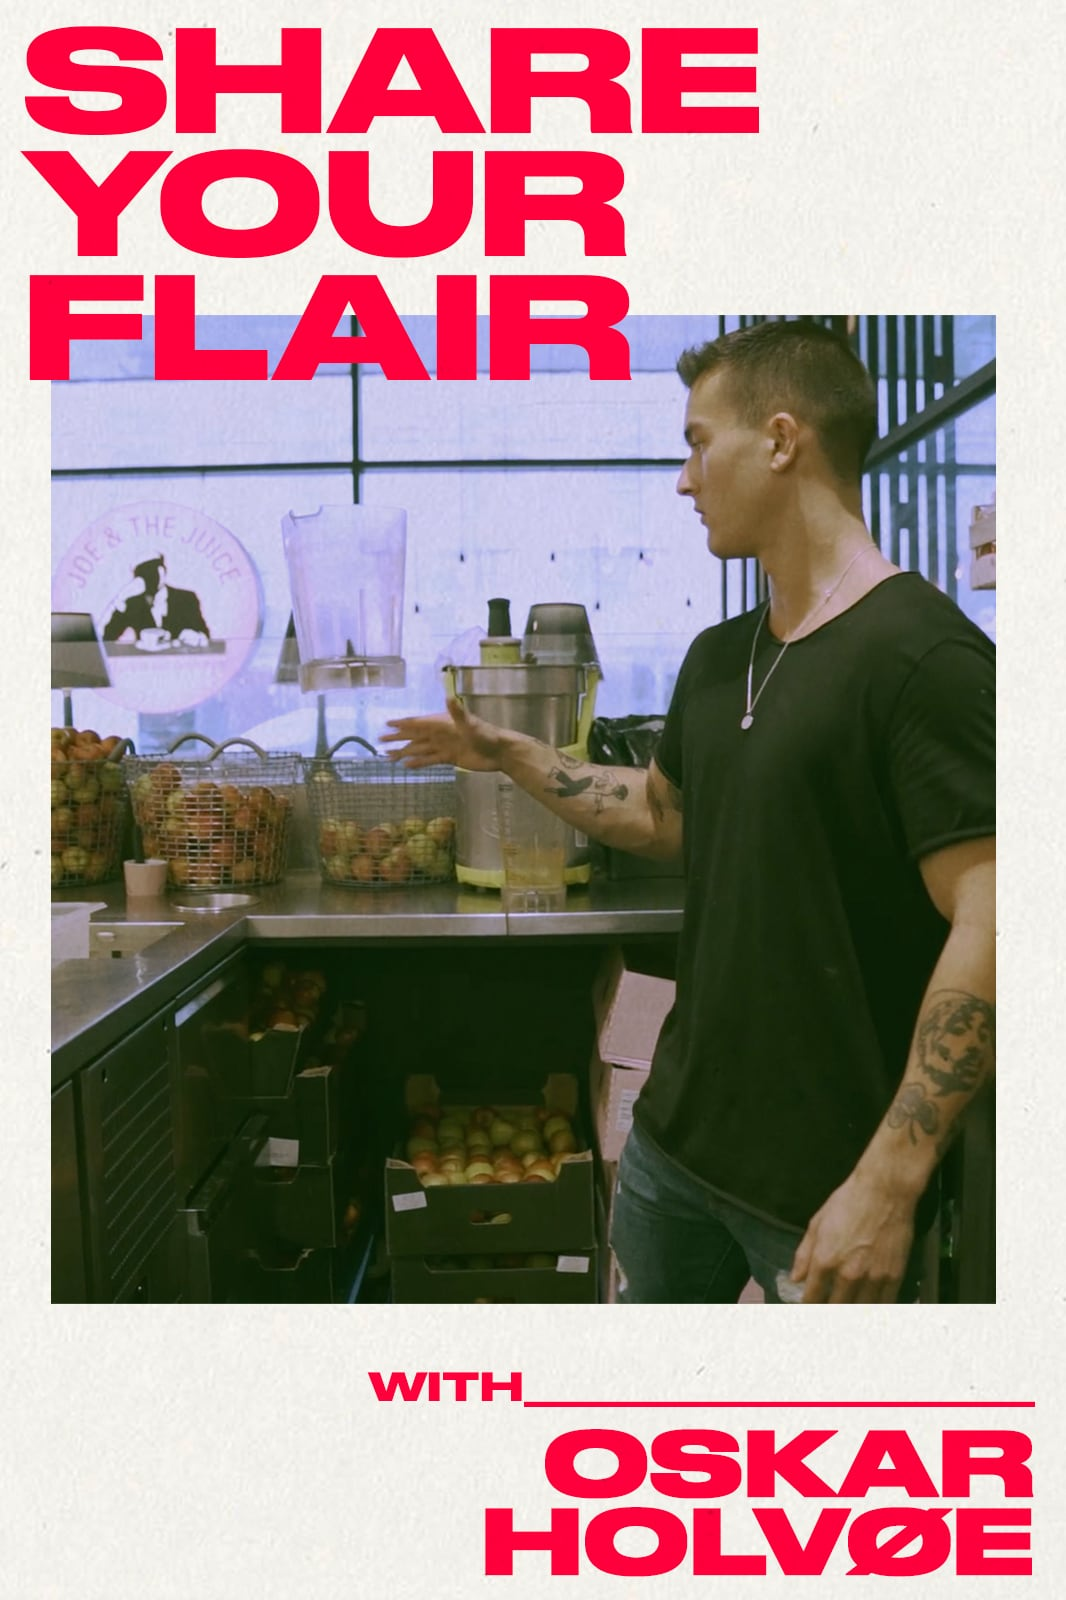 Share your flair|episode 3